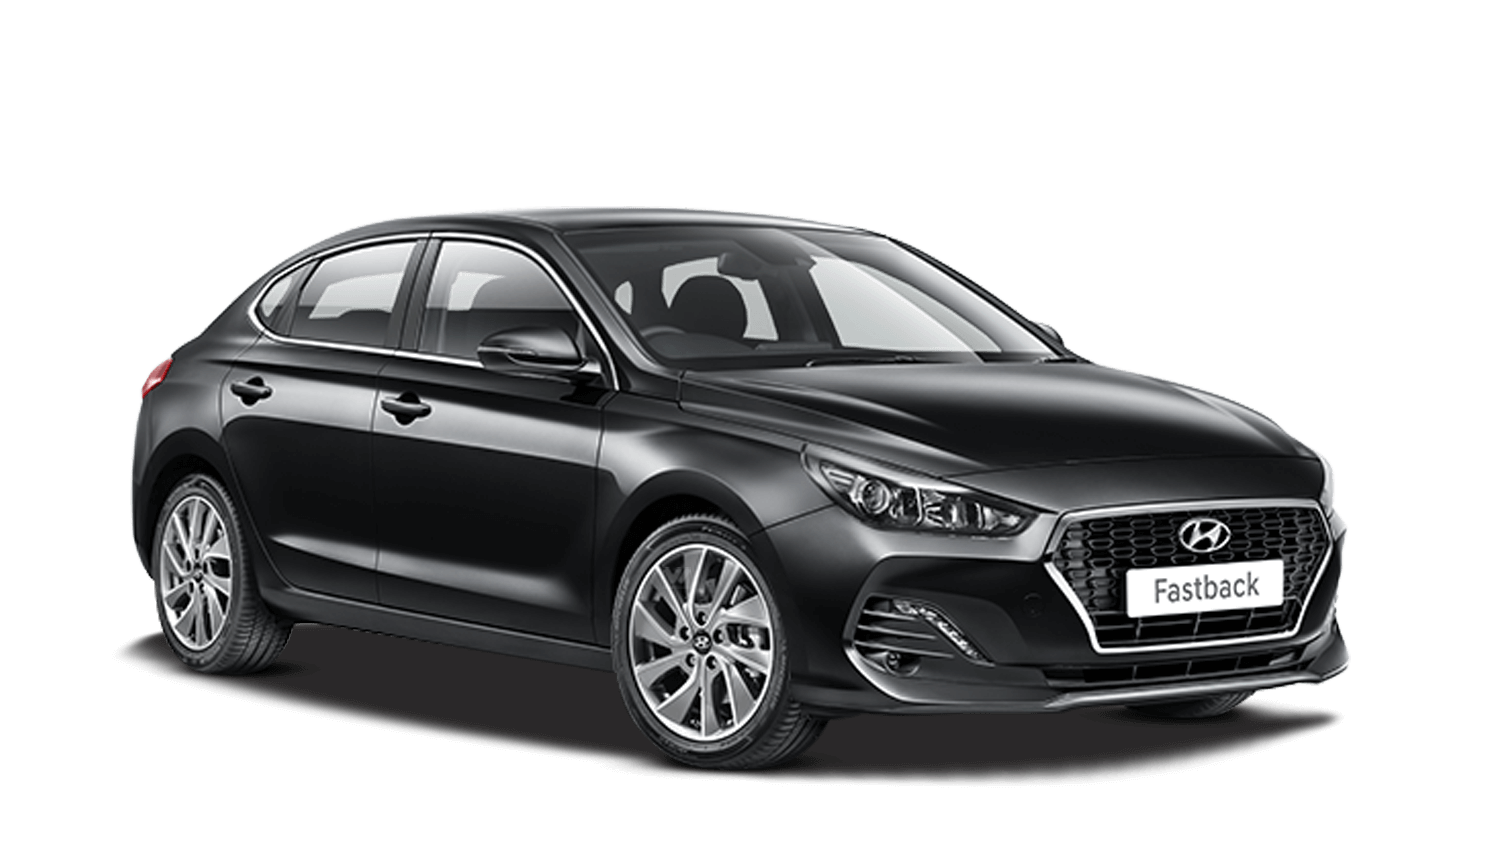 Phantom Black Hyundai I30 Fastback